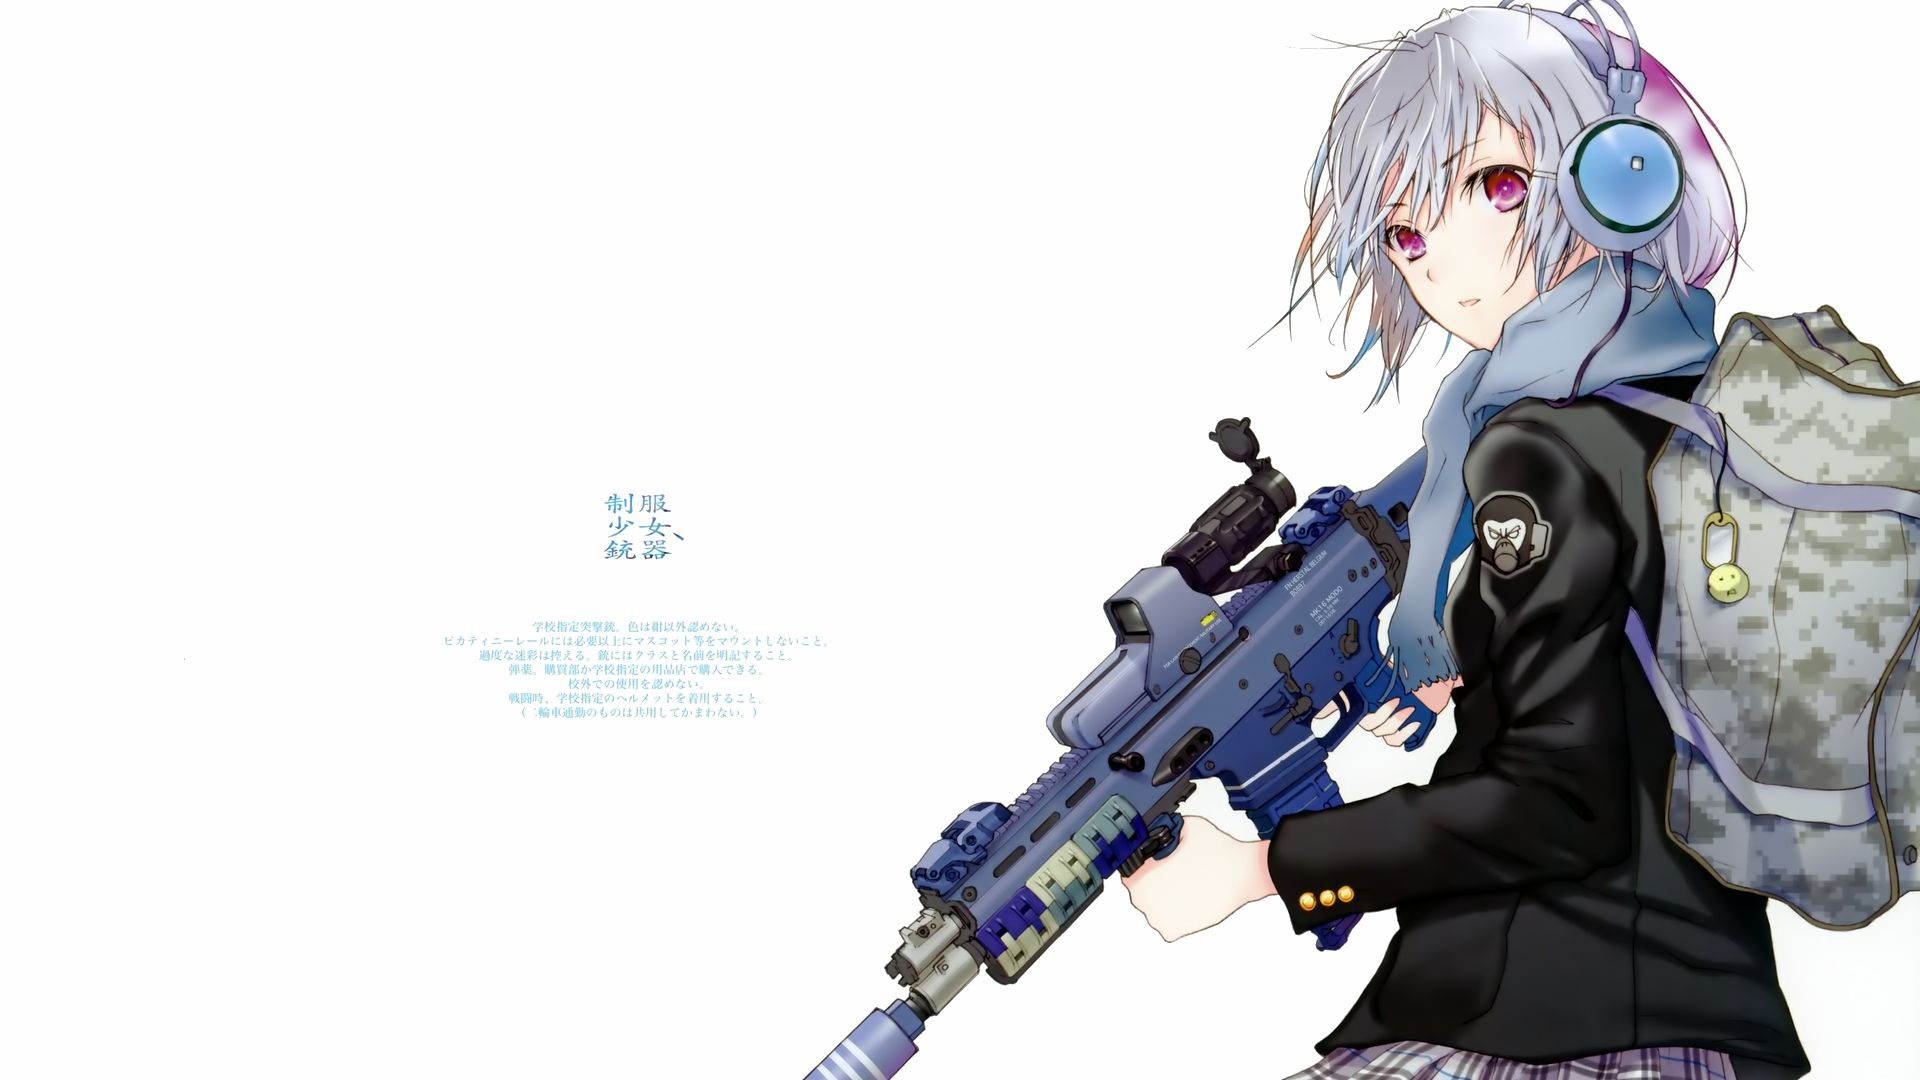 pin by oscar ramos on anime girl gun pinterest green eyes anime and wallpaper